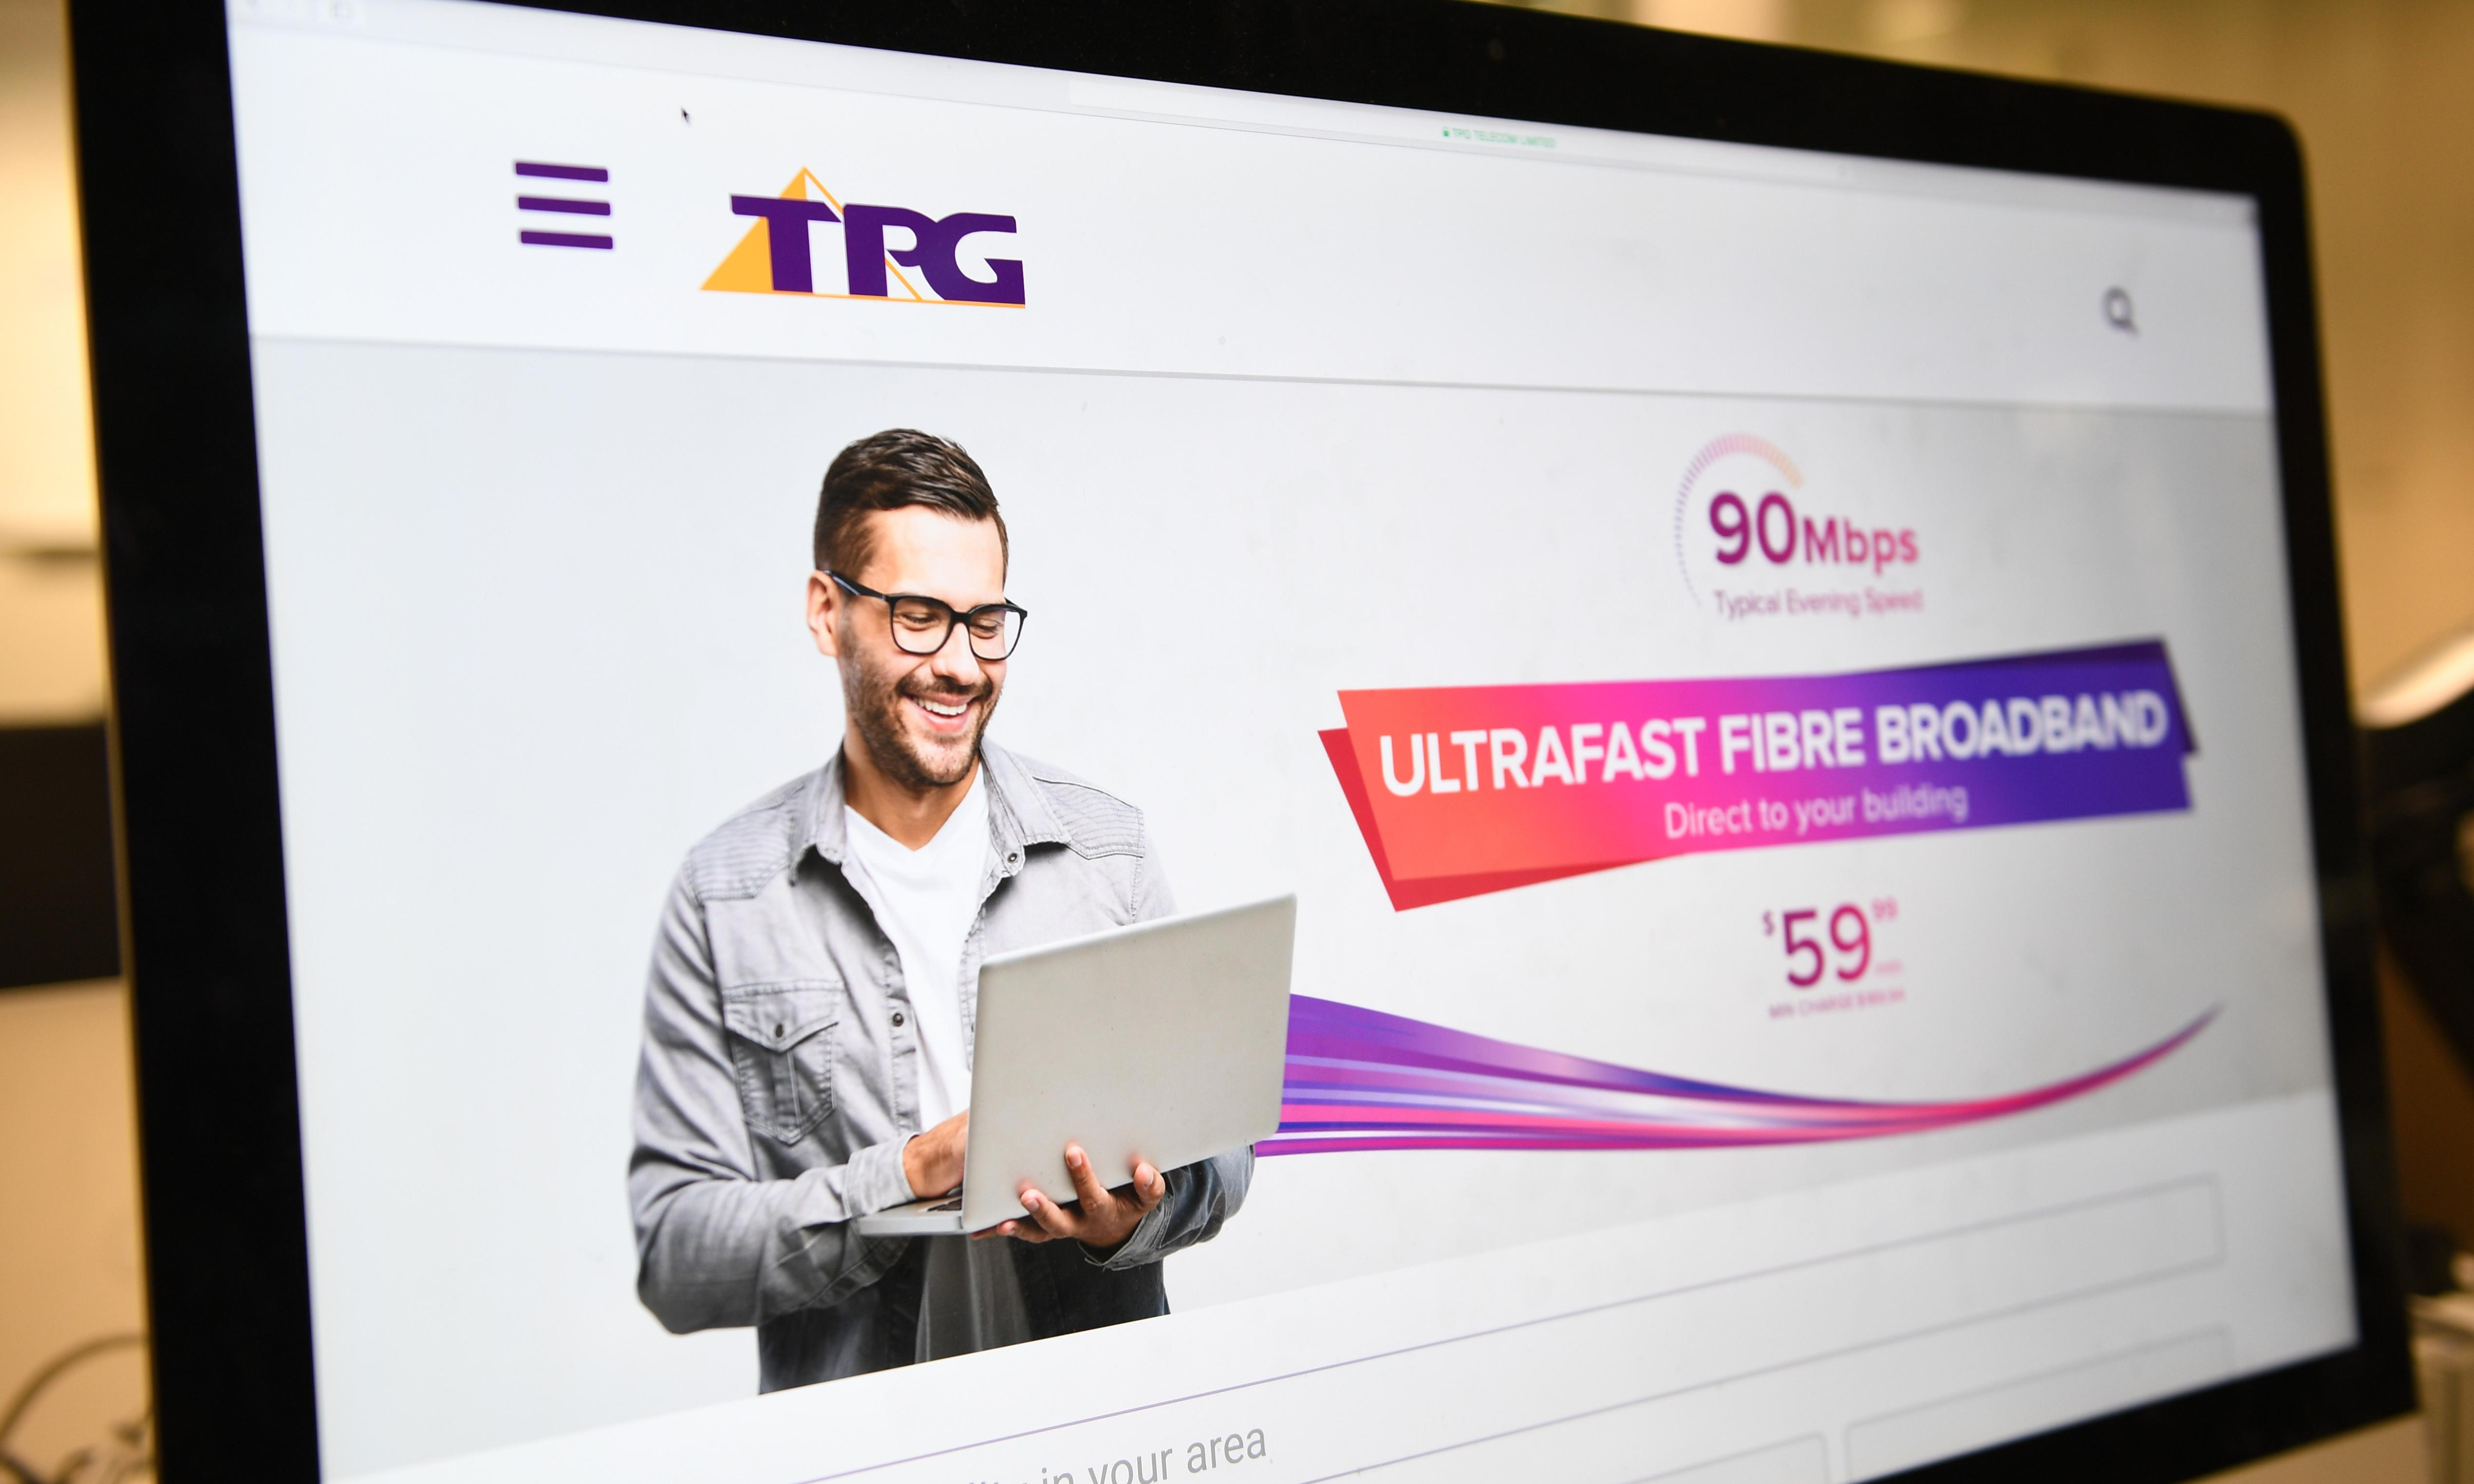 TPG, Vodafone merger would snuff out competition, ACCC tells court